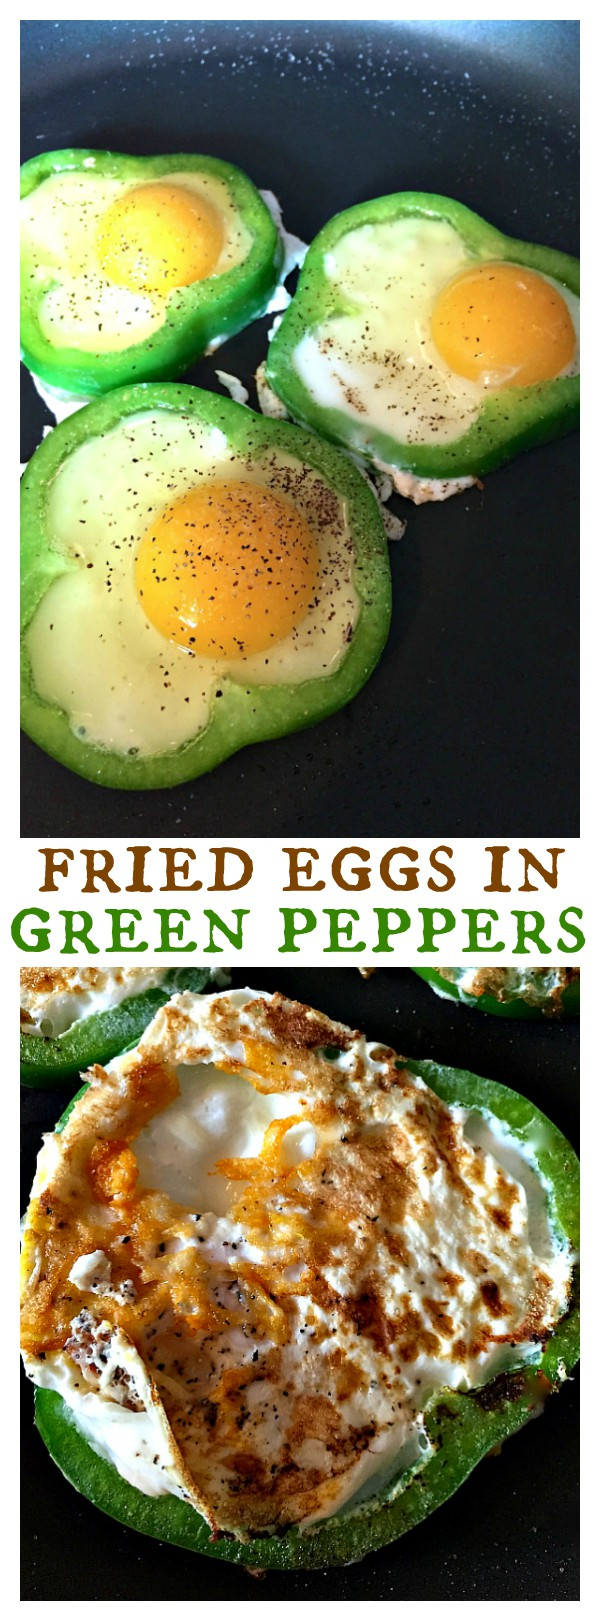 St. Patrick's Day Fried Eggs in Green Pepper Rings recipe